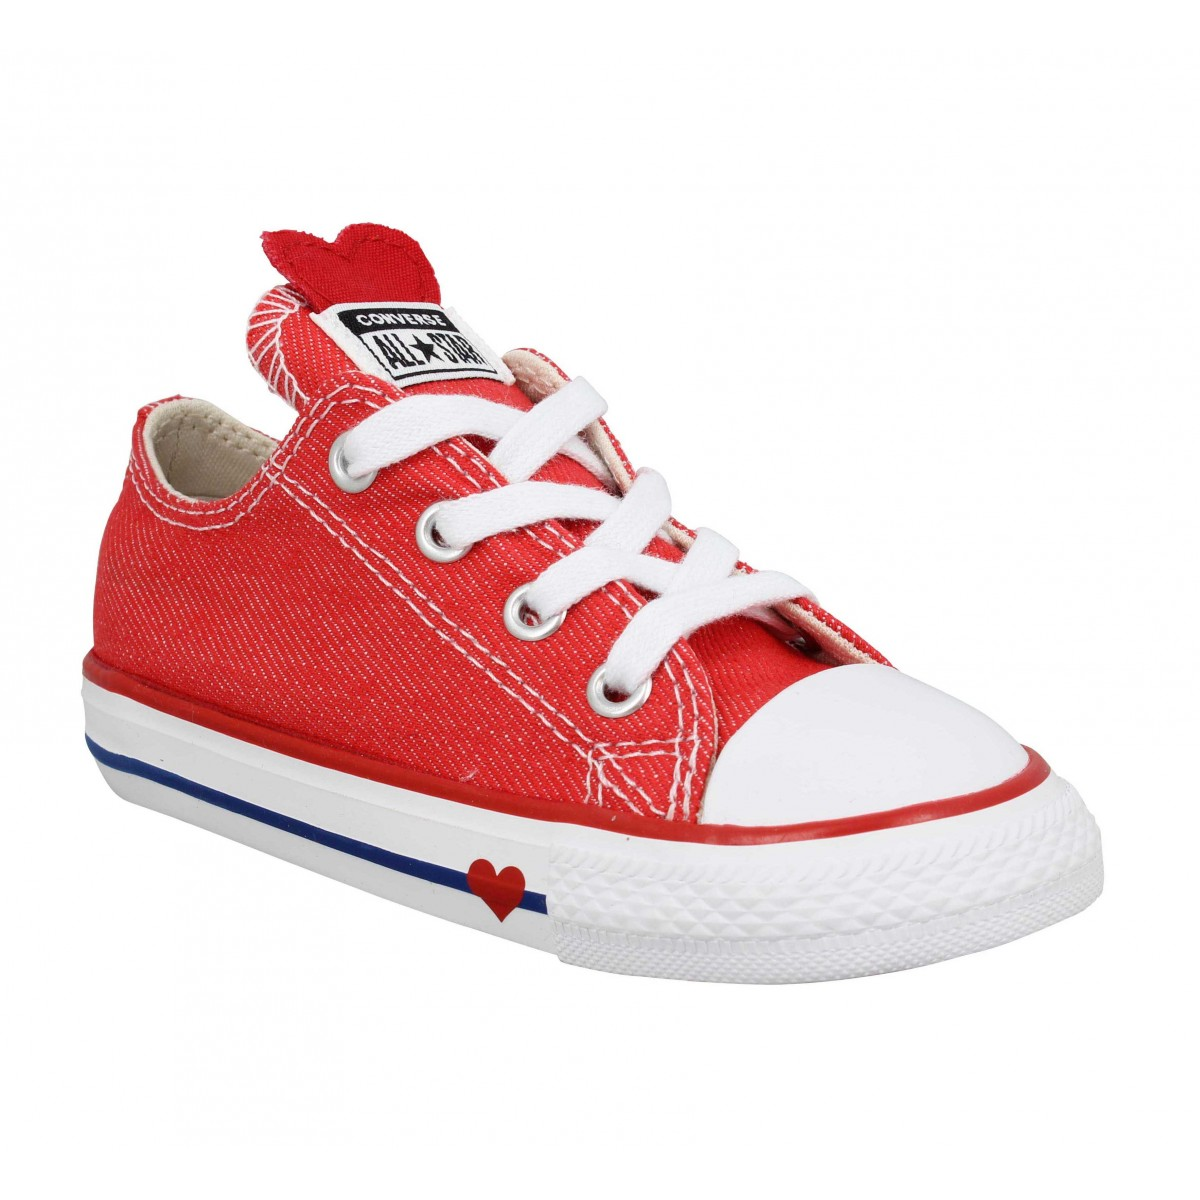 c62383de4b477 Converse chuck taylor all star toile enfant red enfants